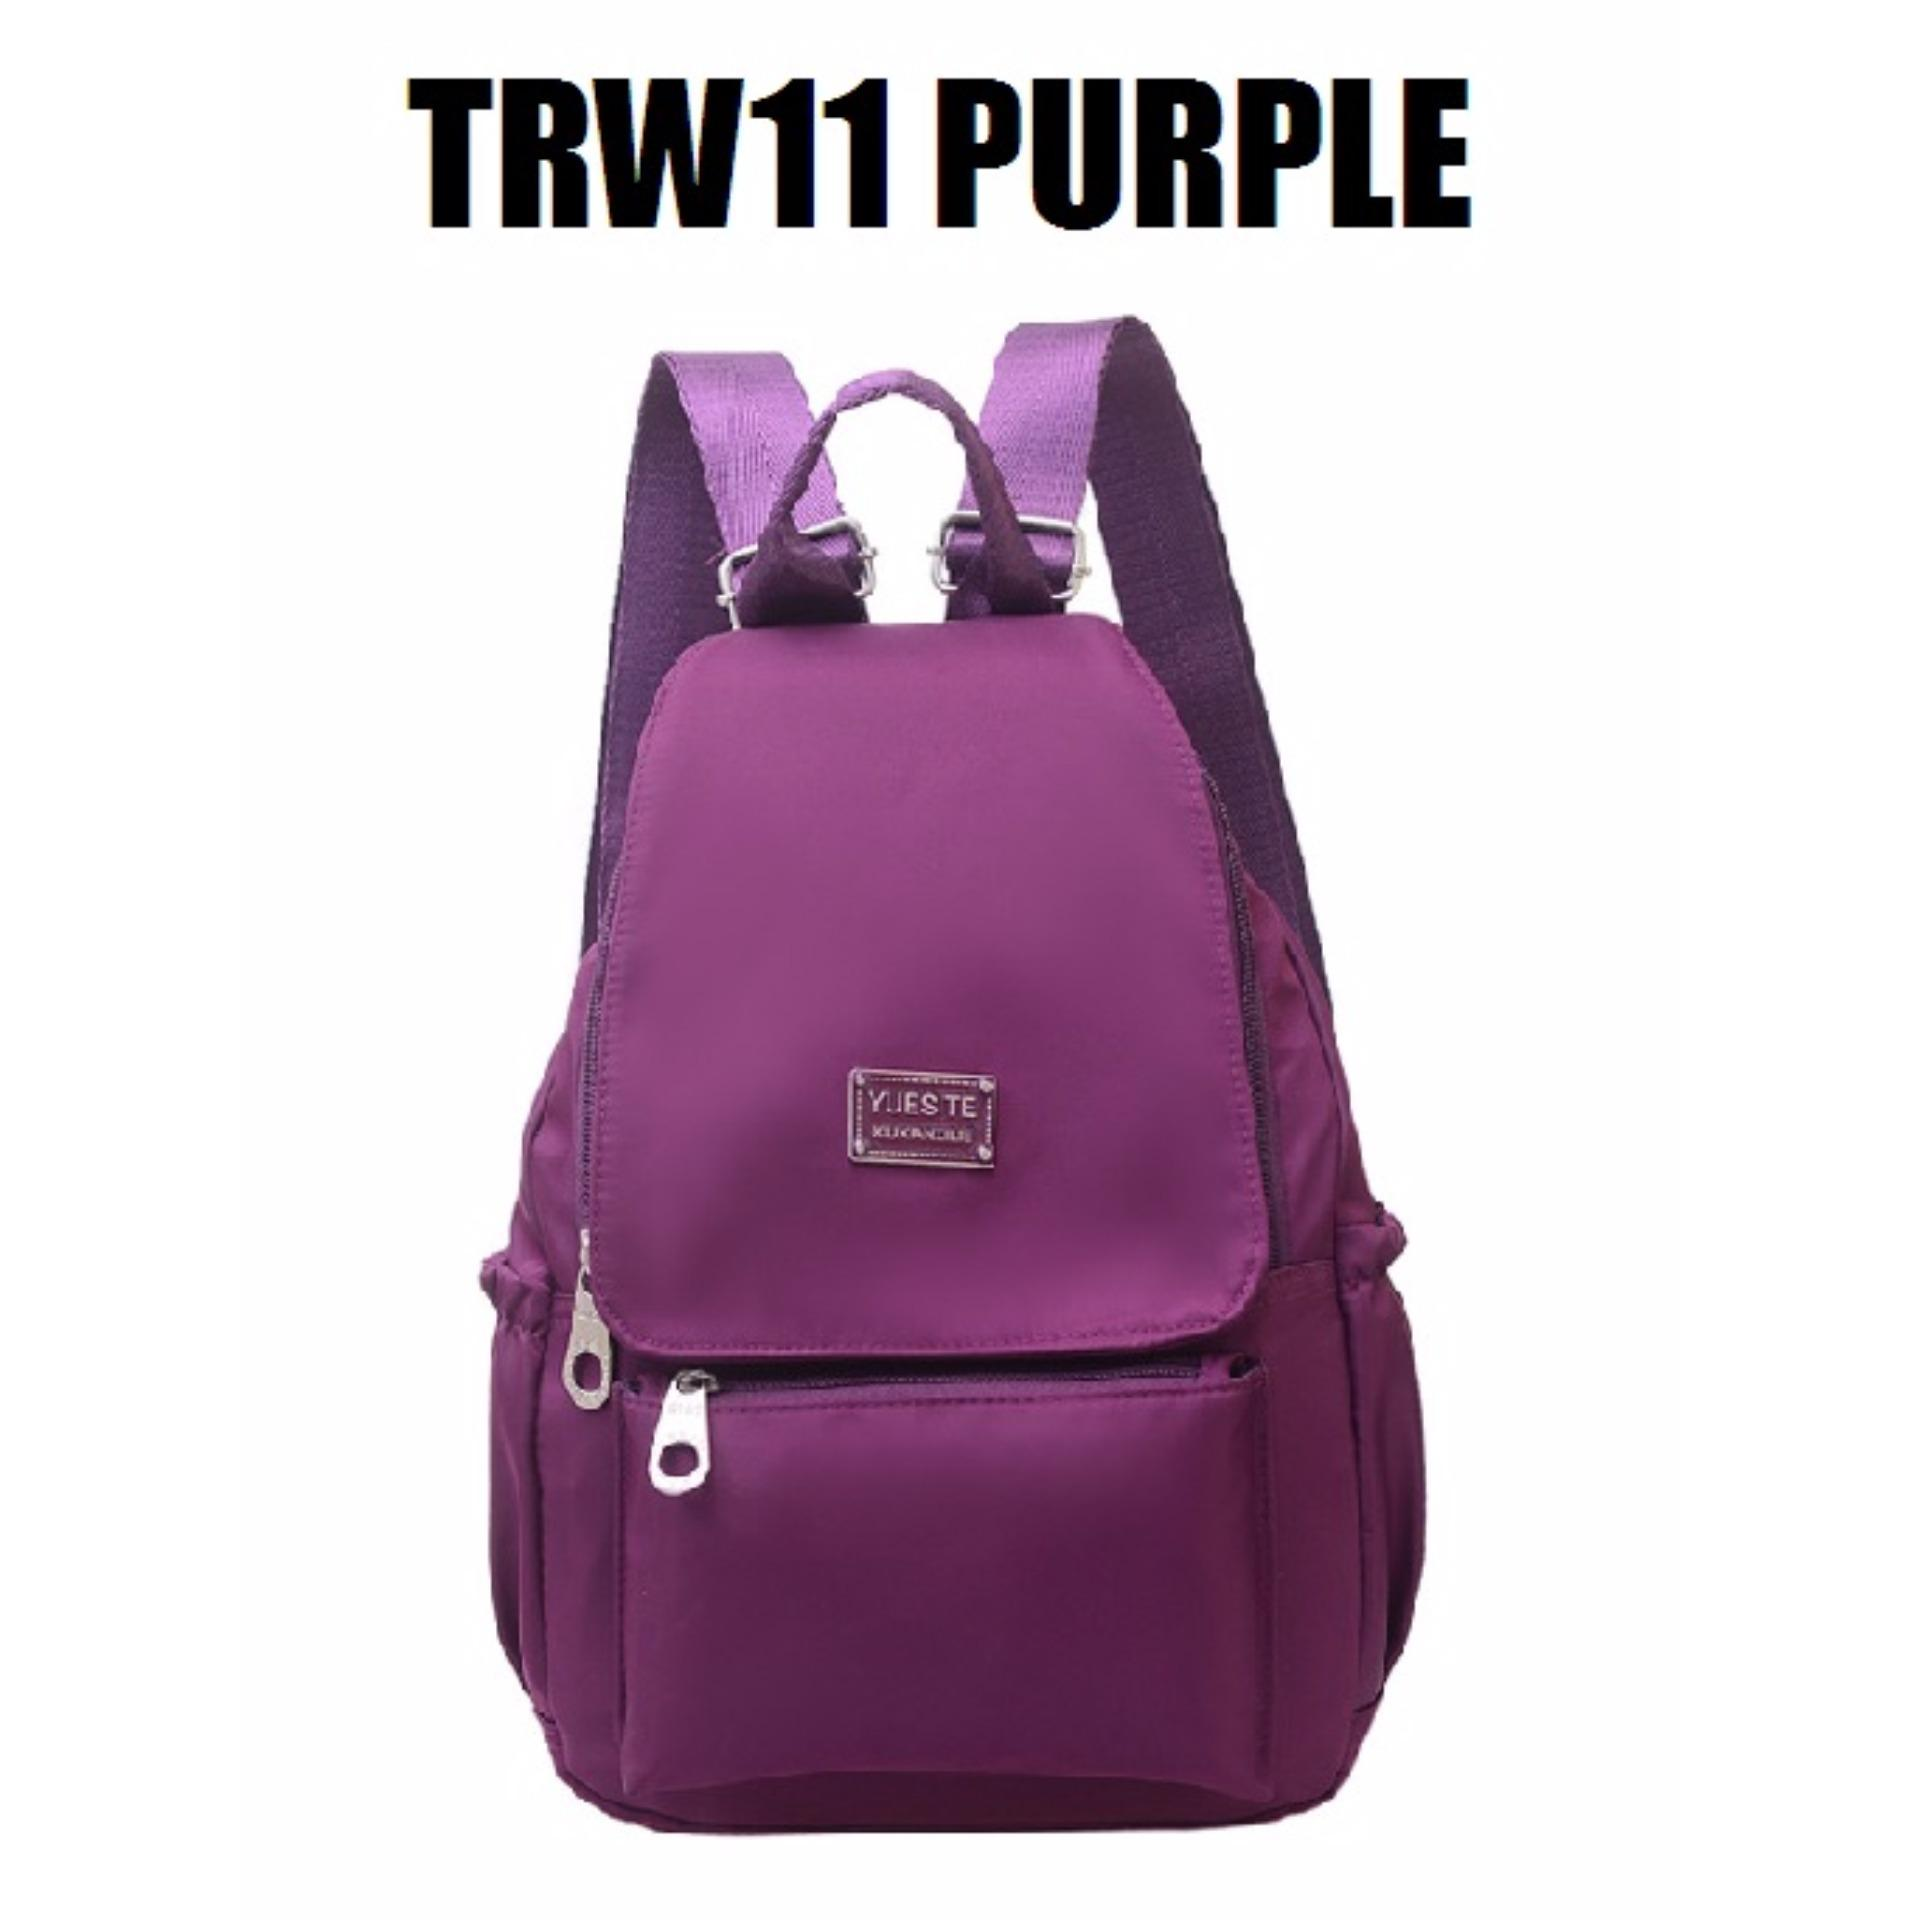 Martin Versa Tas TRW11 Backpack Ransel Wanita Kanvas Nylon - Purple